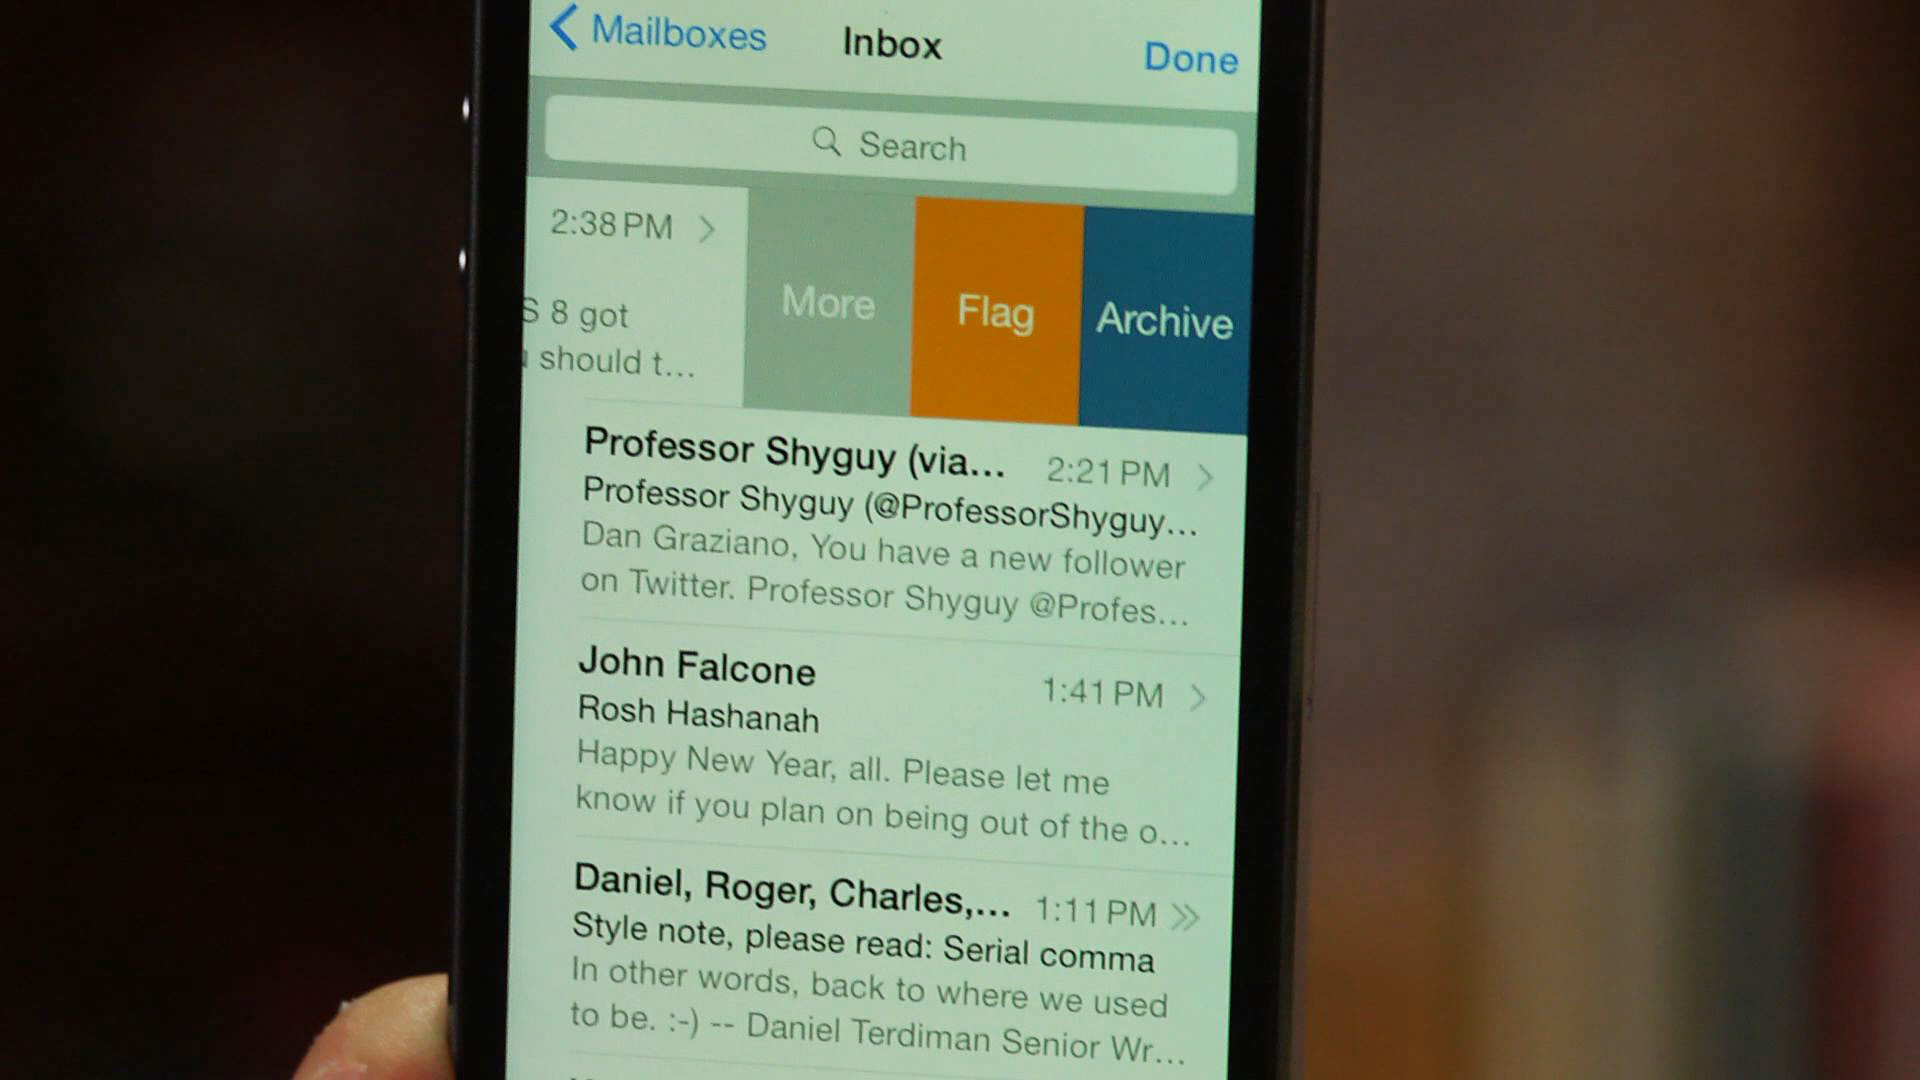 Video: Getting to know the updated Mail app in iOS 8